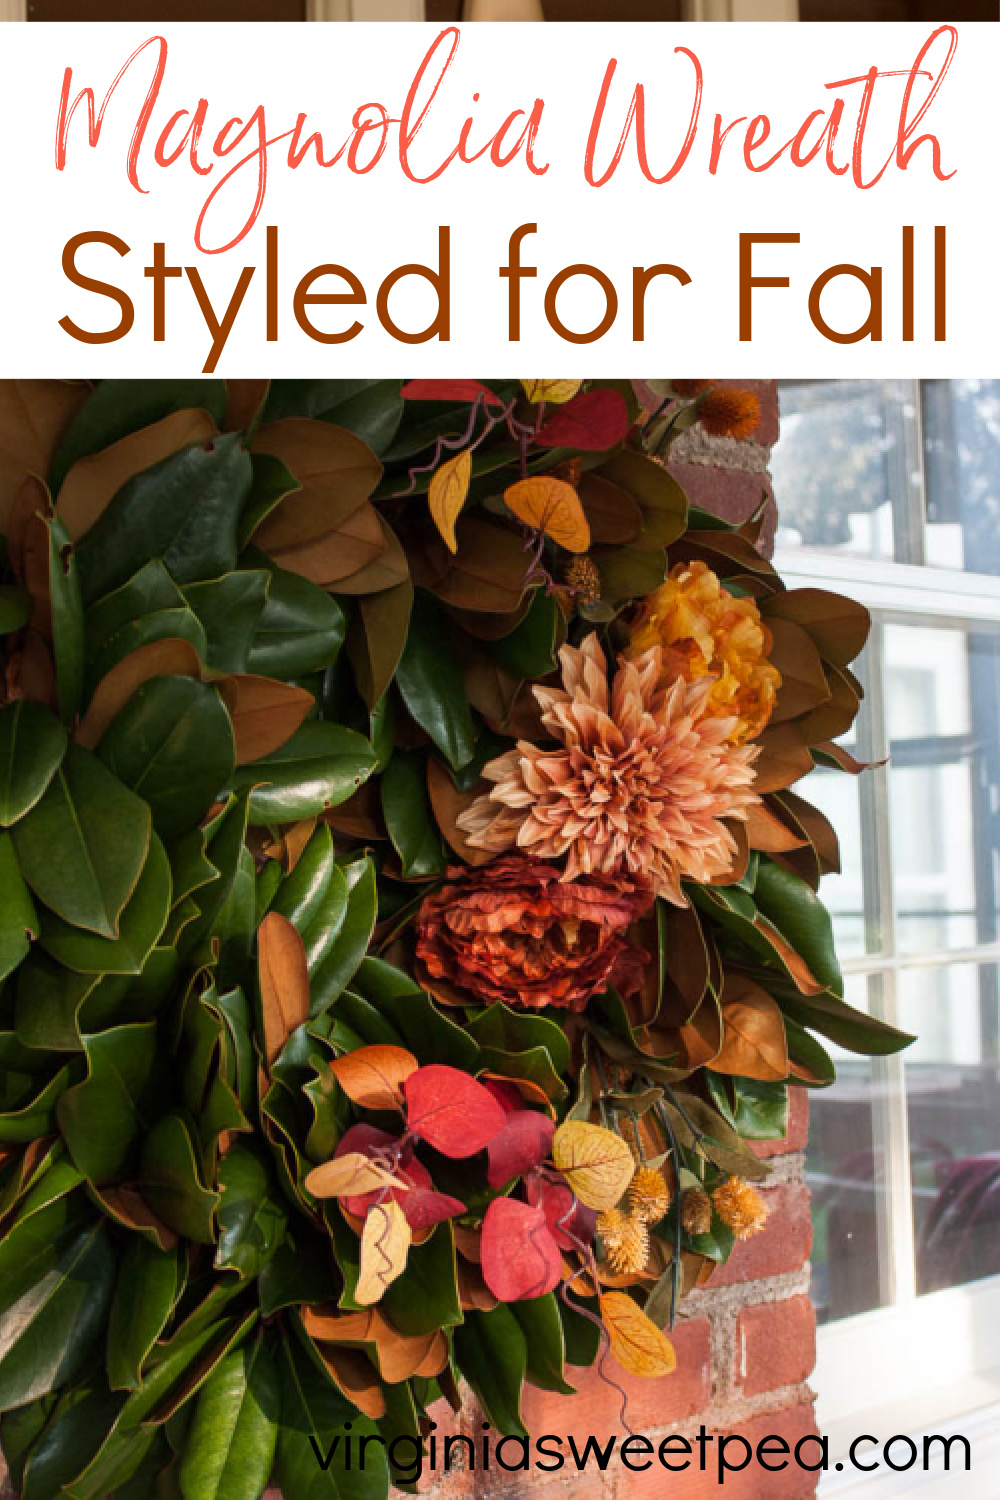 Handmade Magnolia wreath decorated with fall florals